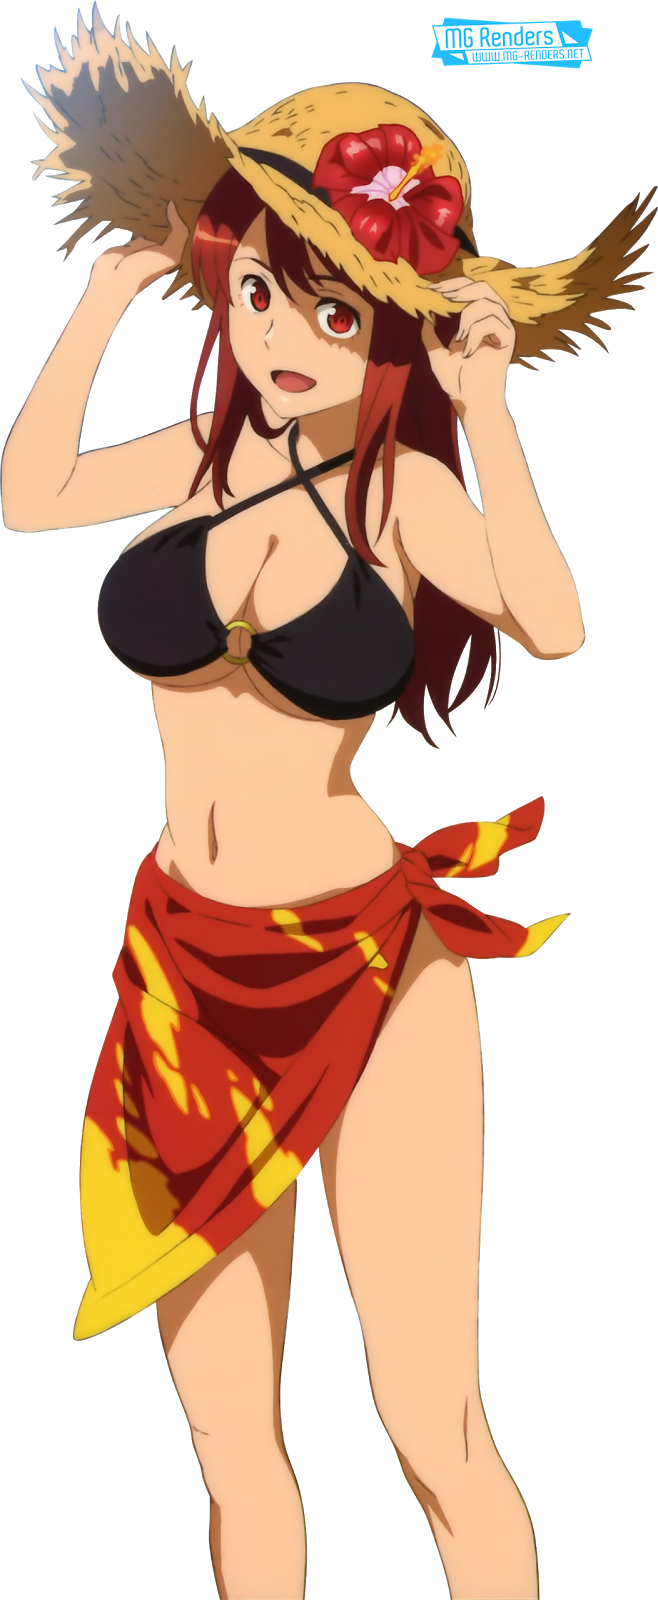 Tags: Anime, Render,  Maou,  Maoyu Maou Yusha,  Skirt,  PNG, Image, Picture